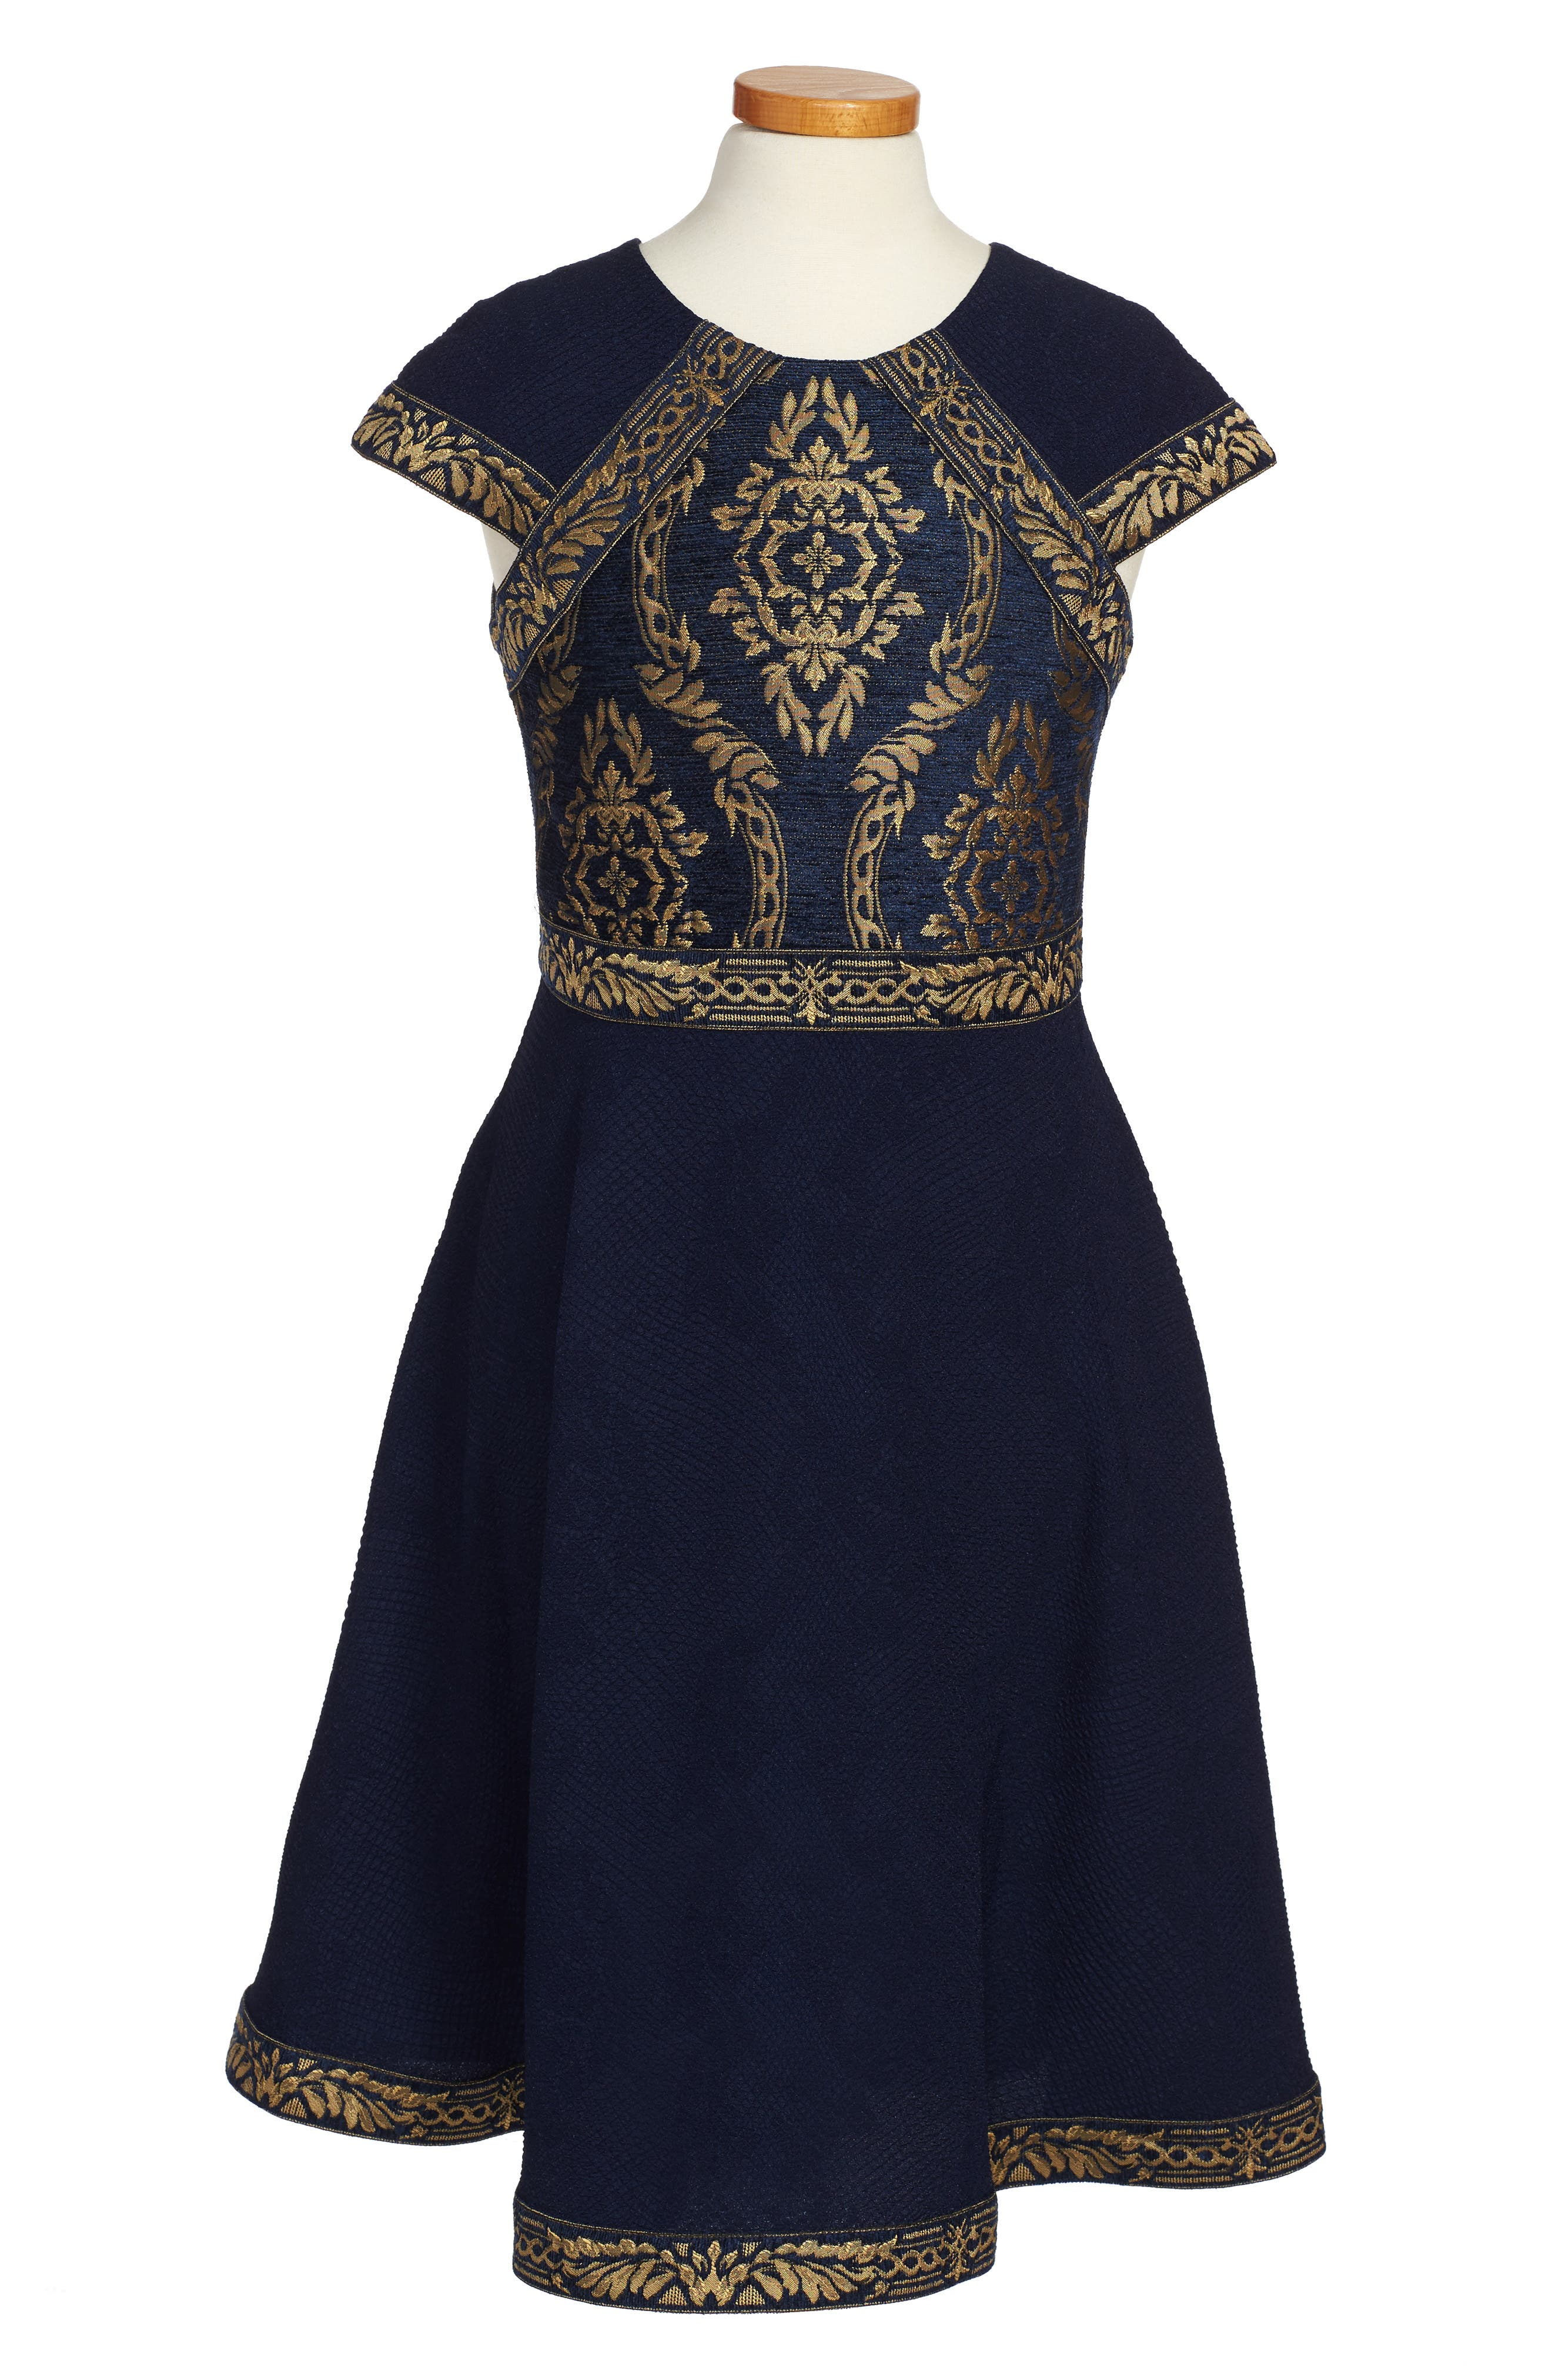 TADASHI SHOJI,                             Brocade Embroidery Party Dress,                             Main thumbnail 1, color,                             400